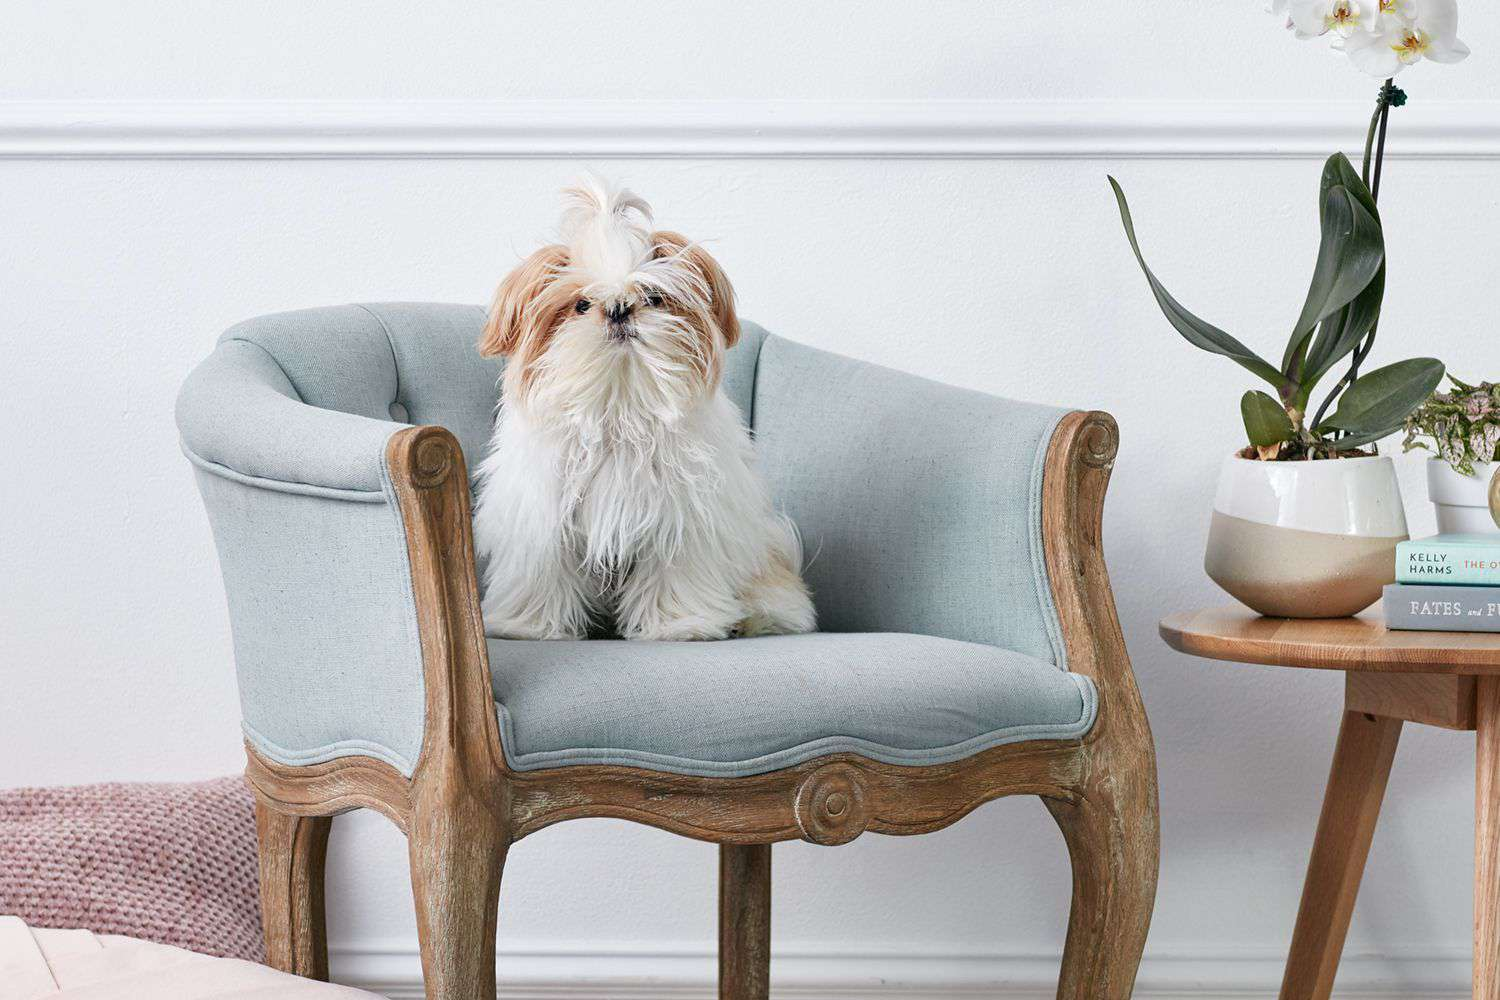 Shih Tzu sitting on blue-gray and wooden vintage chair